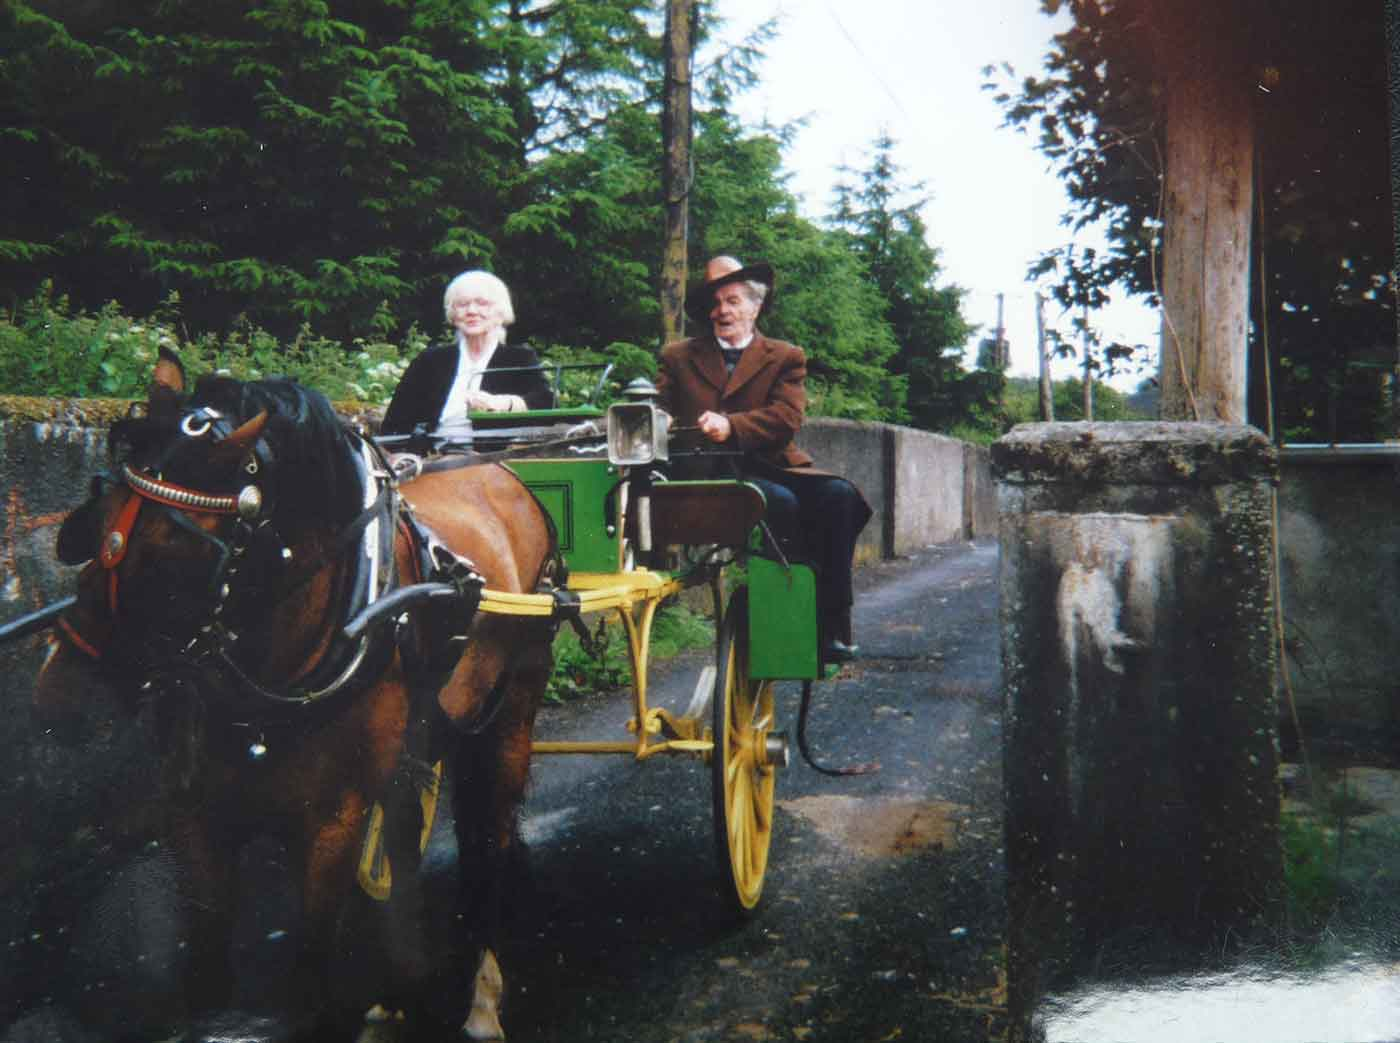 An elderly man and woman are travelling down a country town lane on a horse-drawn carriage.